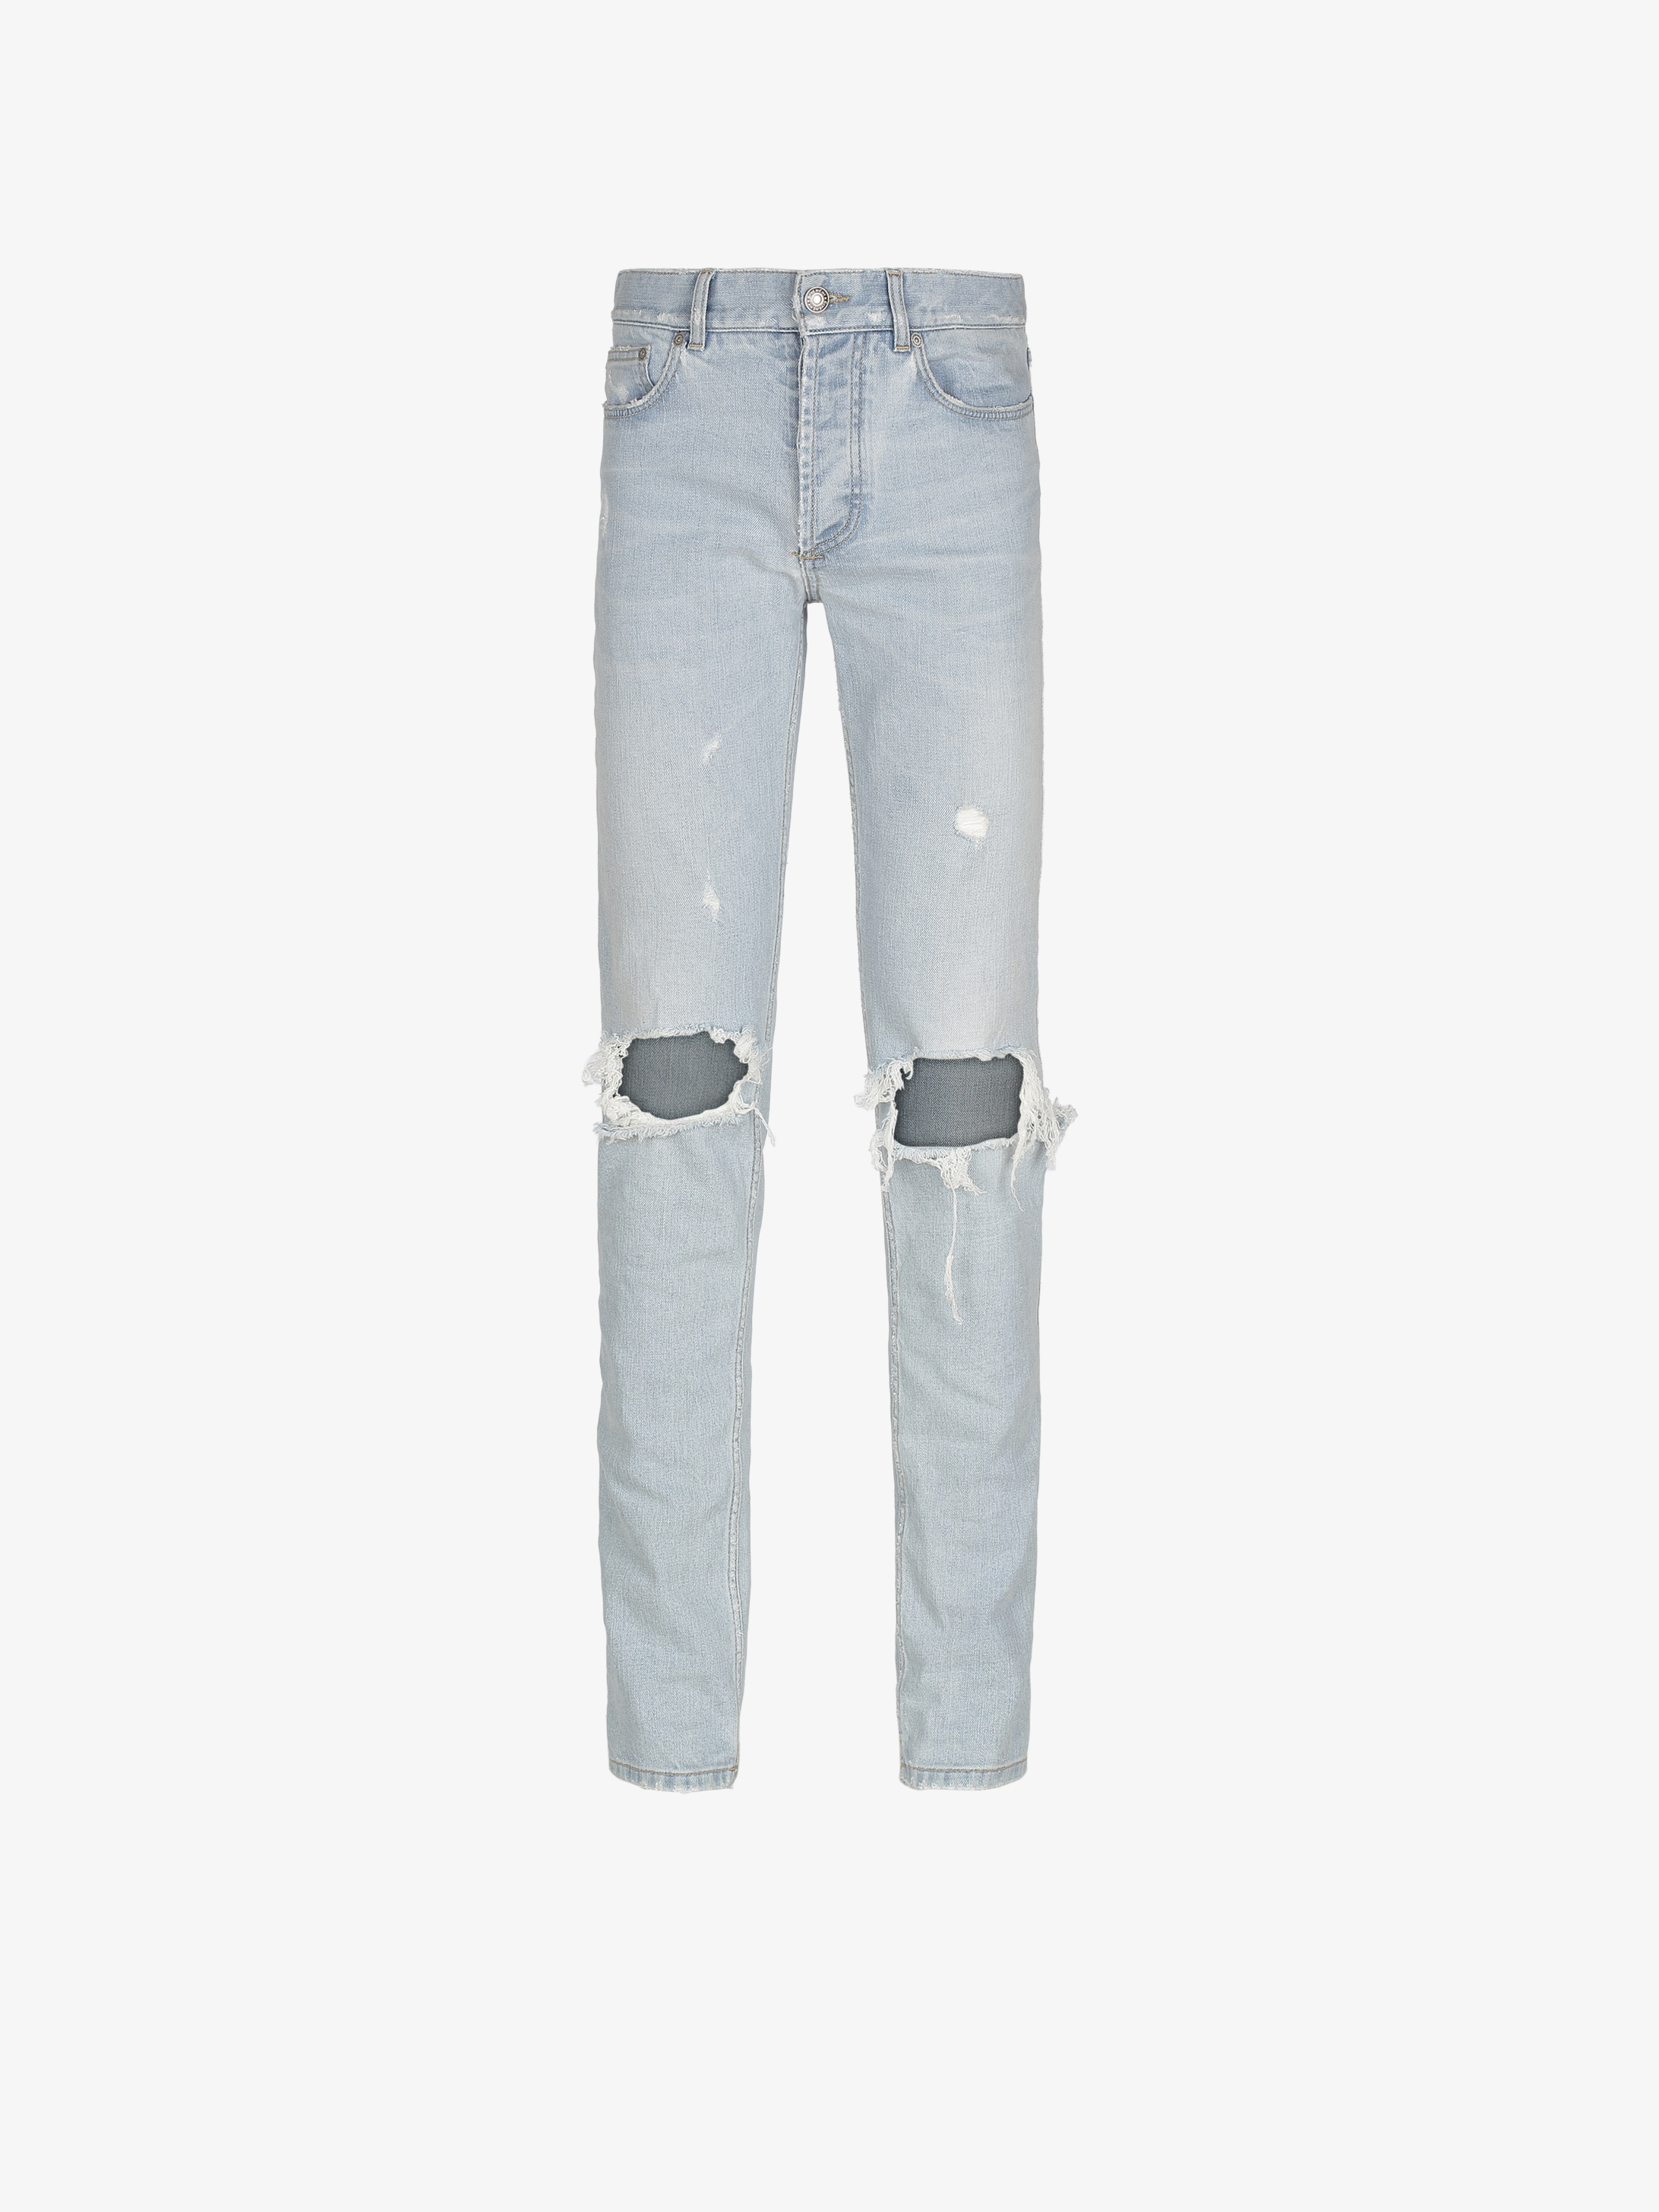 GIVENCHY destroyed jean slim